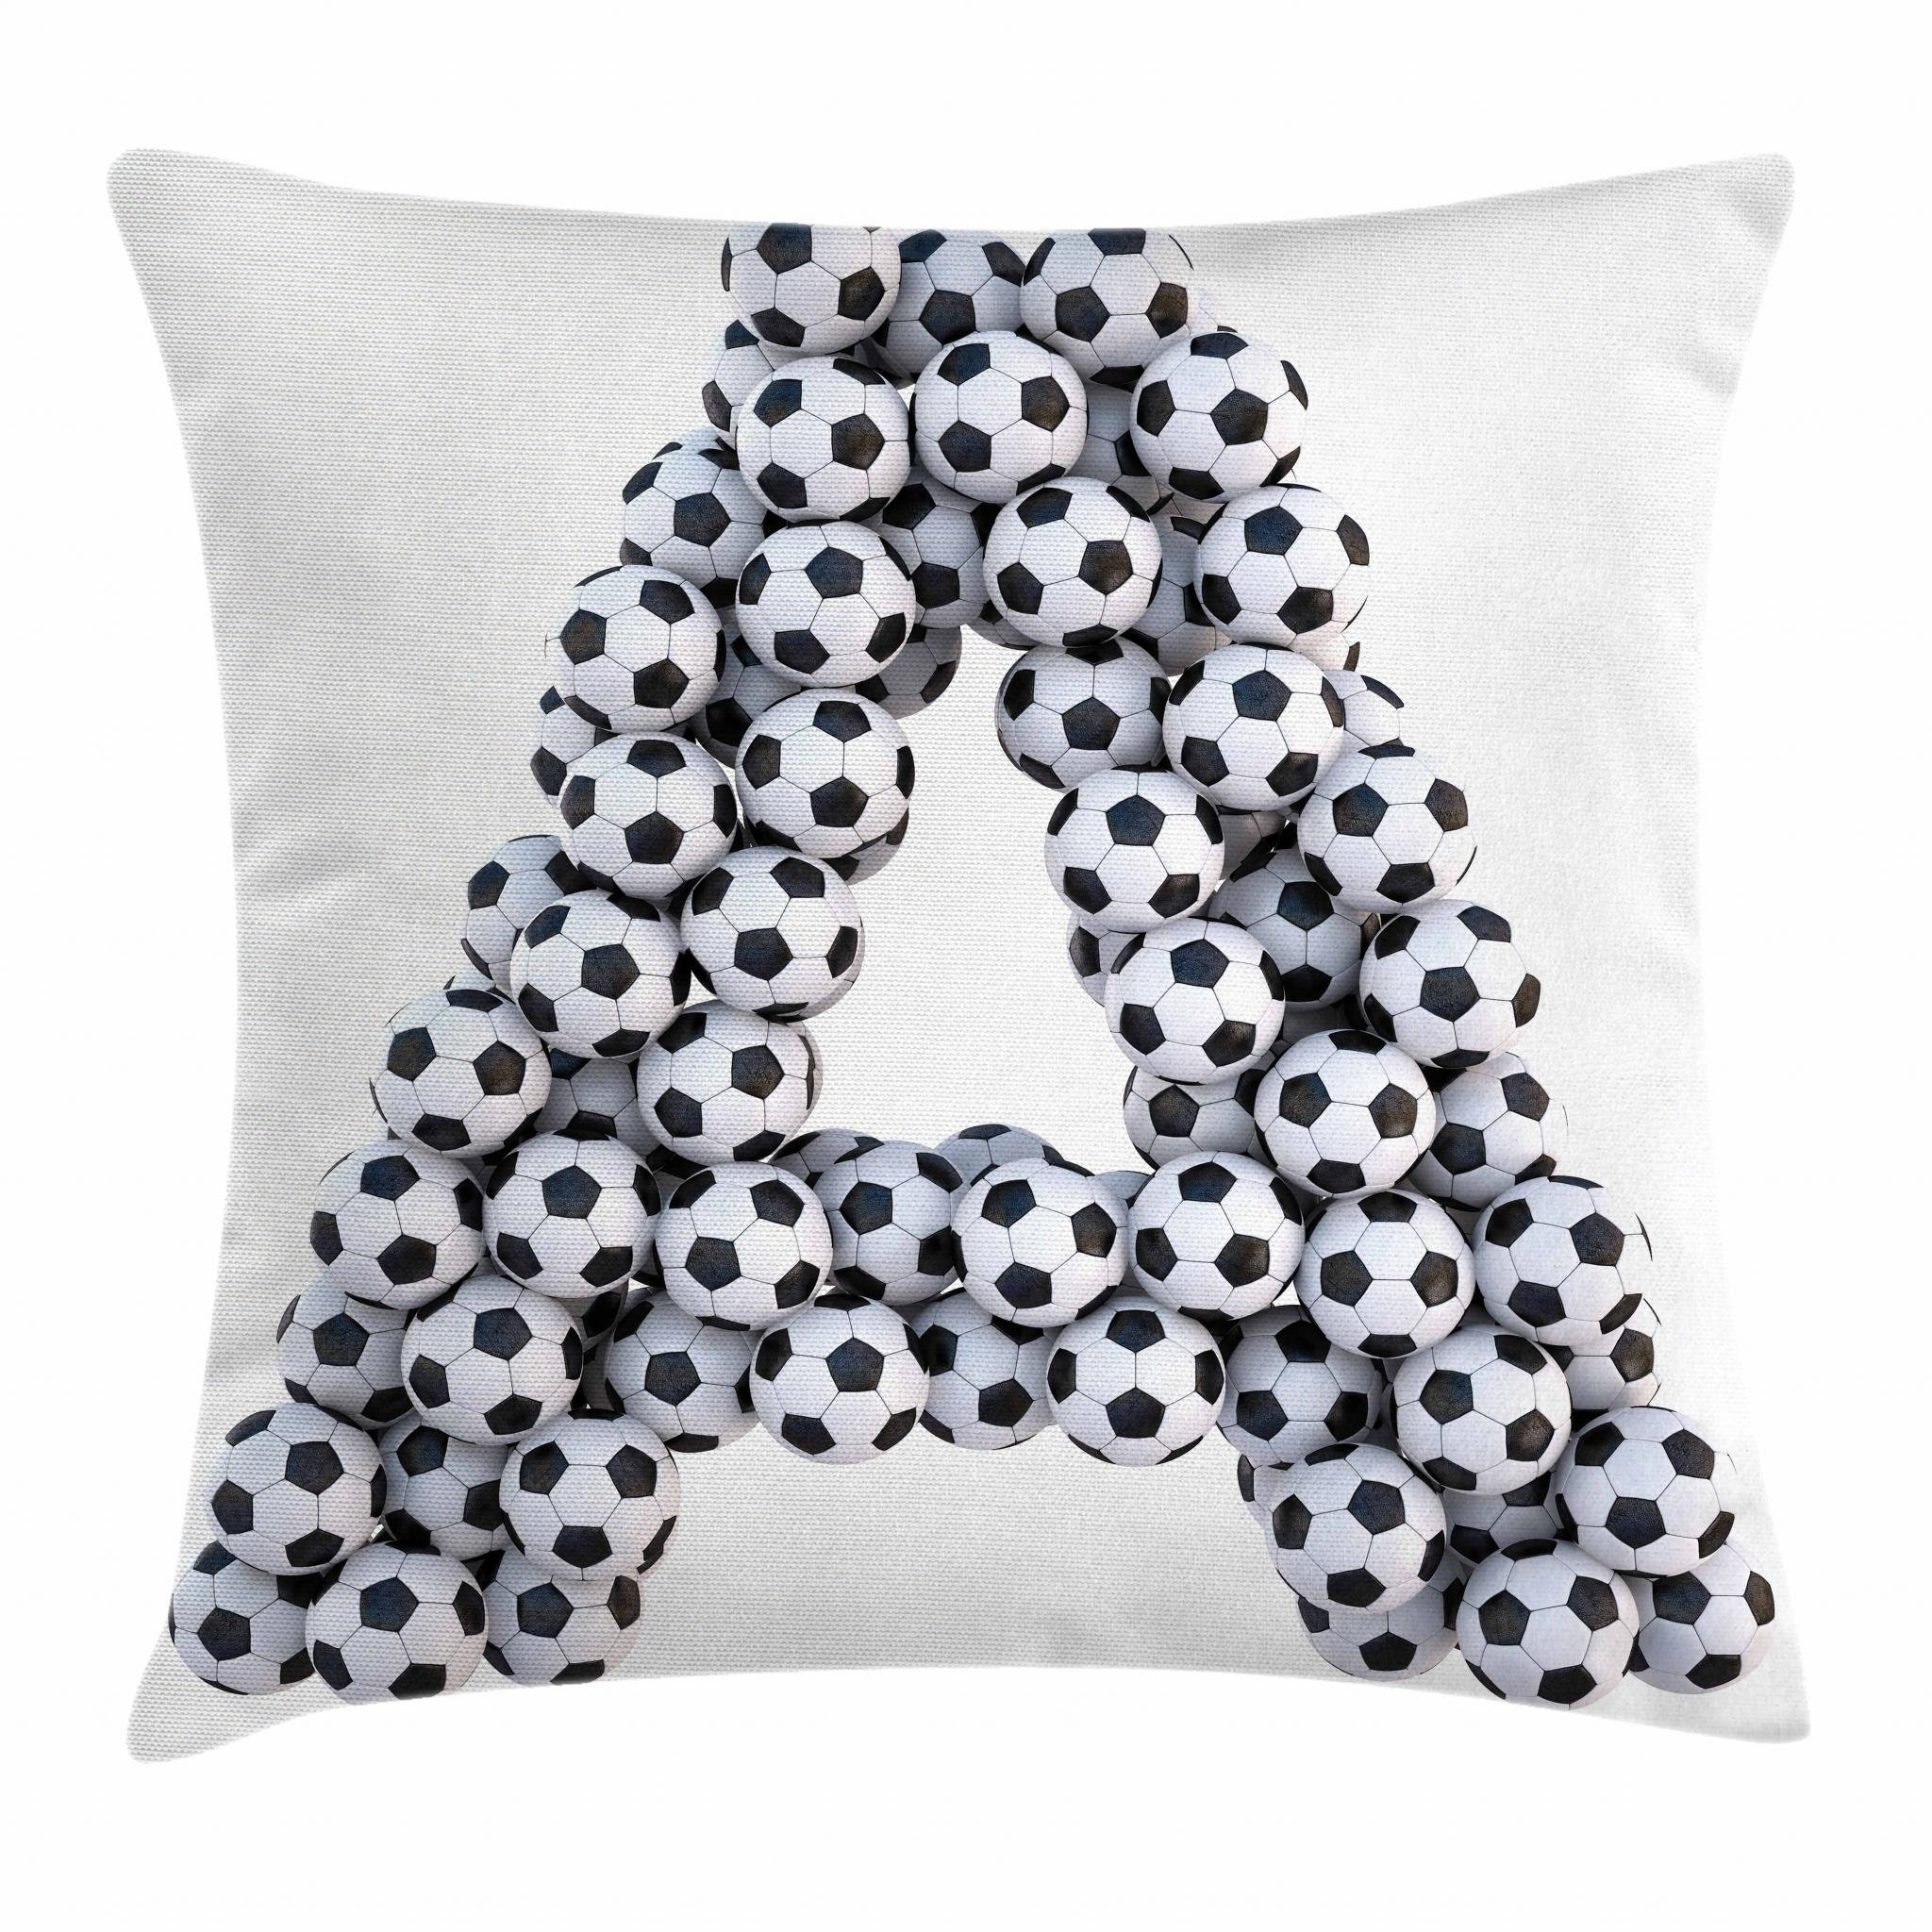 Ambesonne Letter A Throw Pillow Cushion Cover, Realistic Soccer Balls in Form of Capital A Sports Play League Competition Theme, Decorative Square Accent Pillow Case, 16 X 16 Inches, Black White